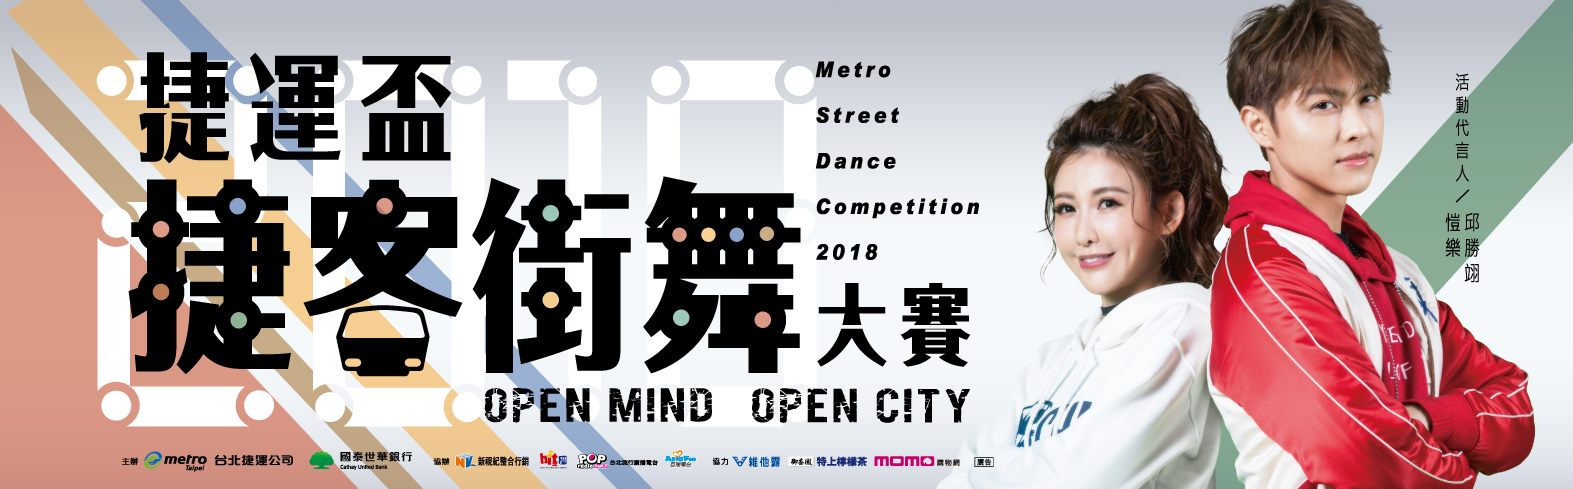 MRT Street Dance Competition Now Accepting Entries![Open in new window]